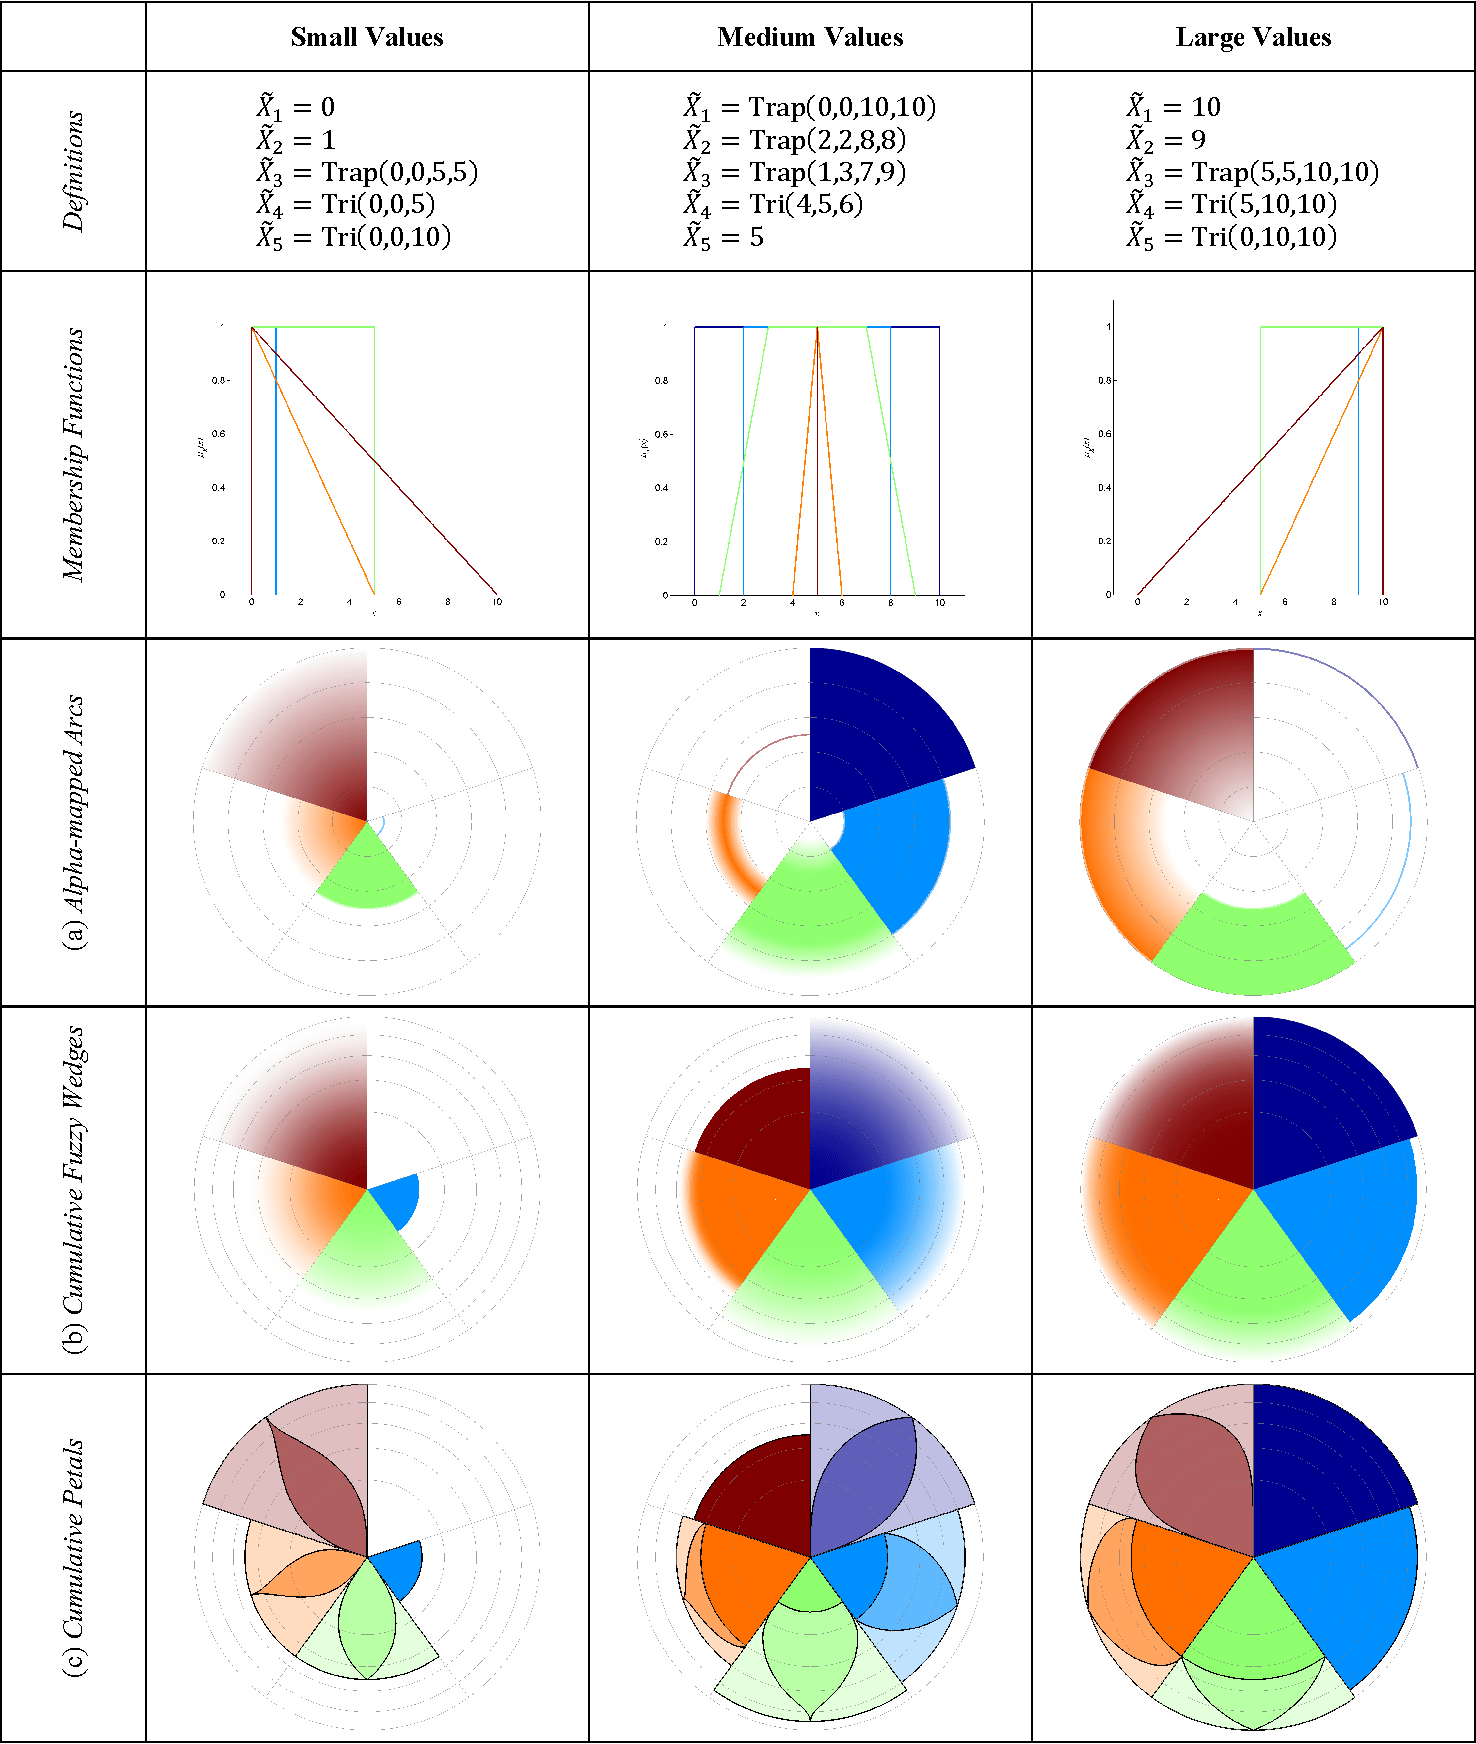 hight resolution of examples of fuzzy rose diagrams drawn in three different styles each